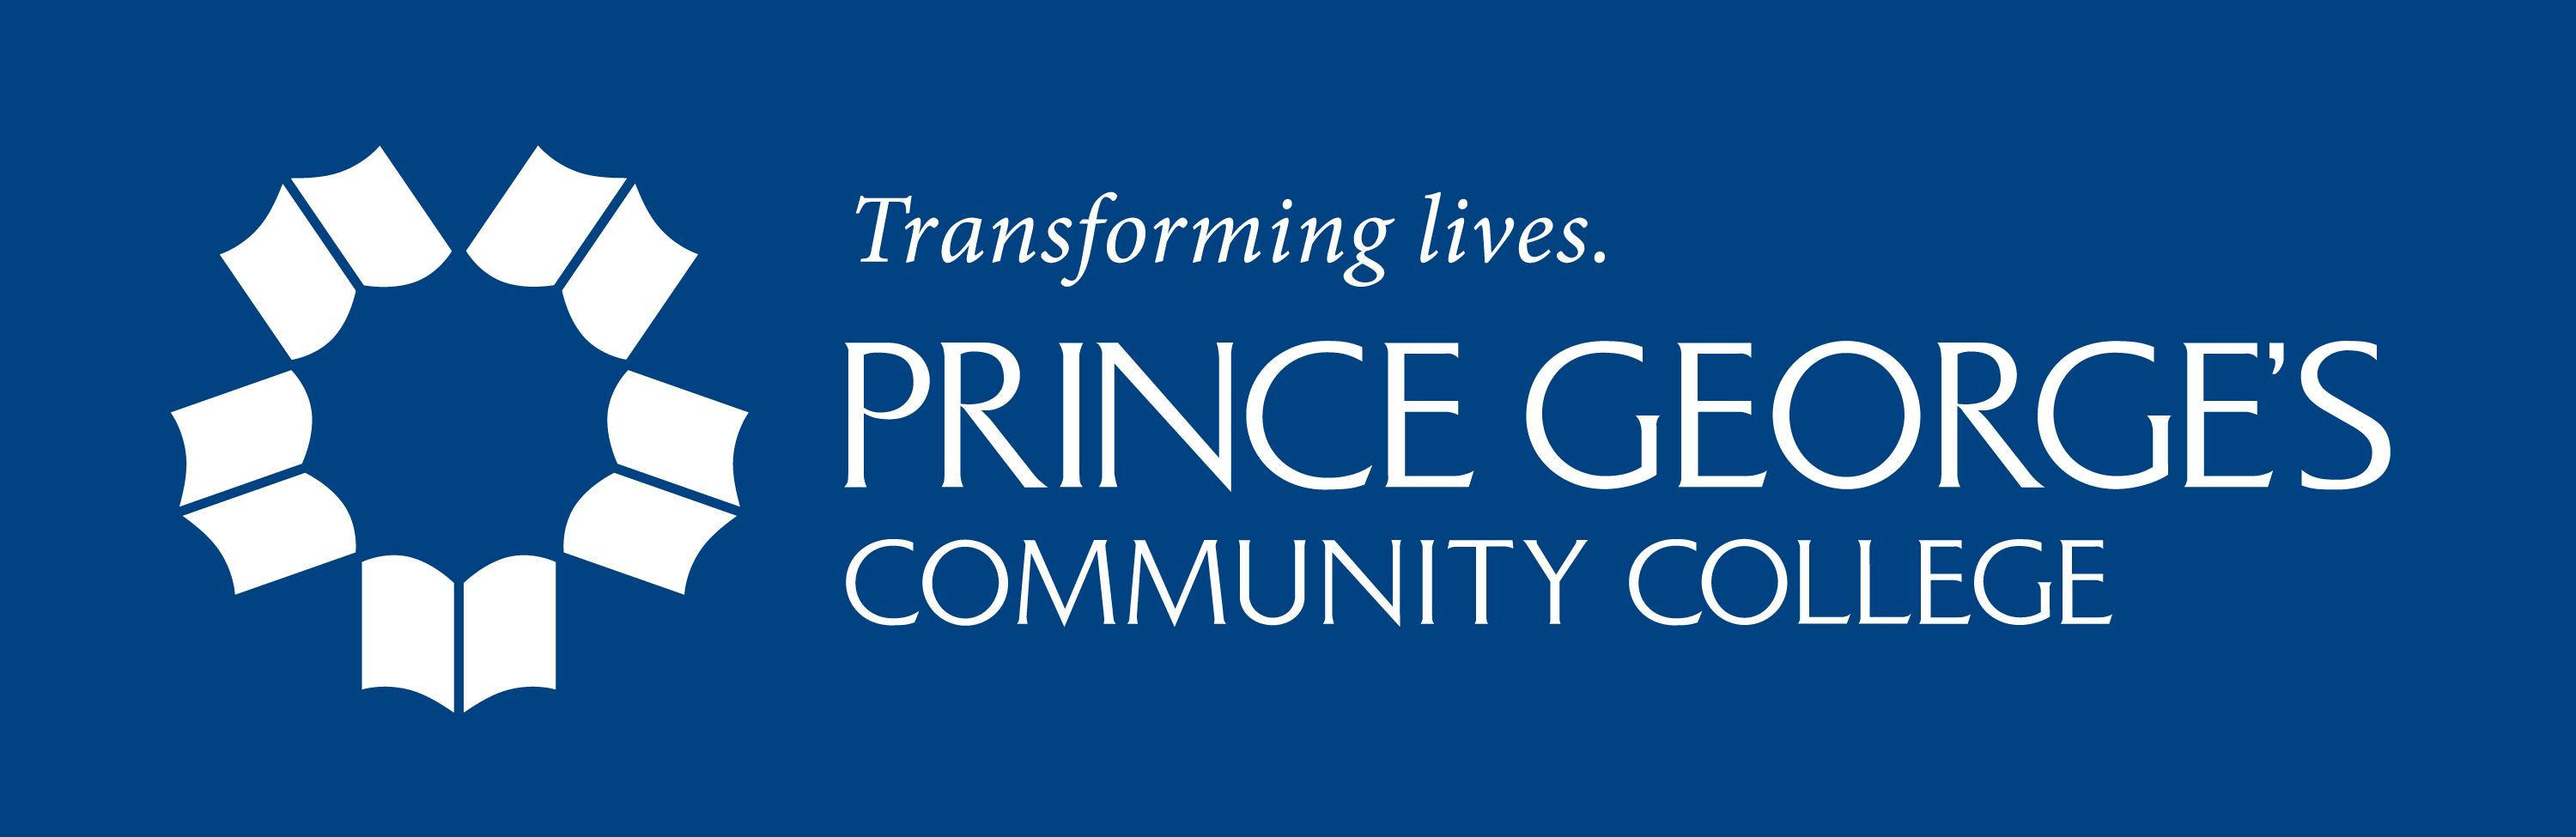 Transforming lives. Prince George's Community College